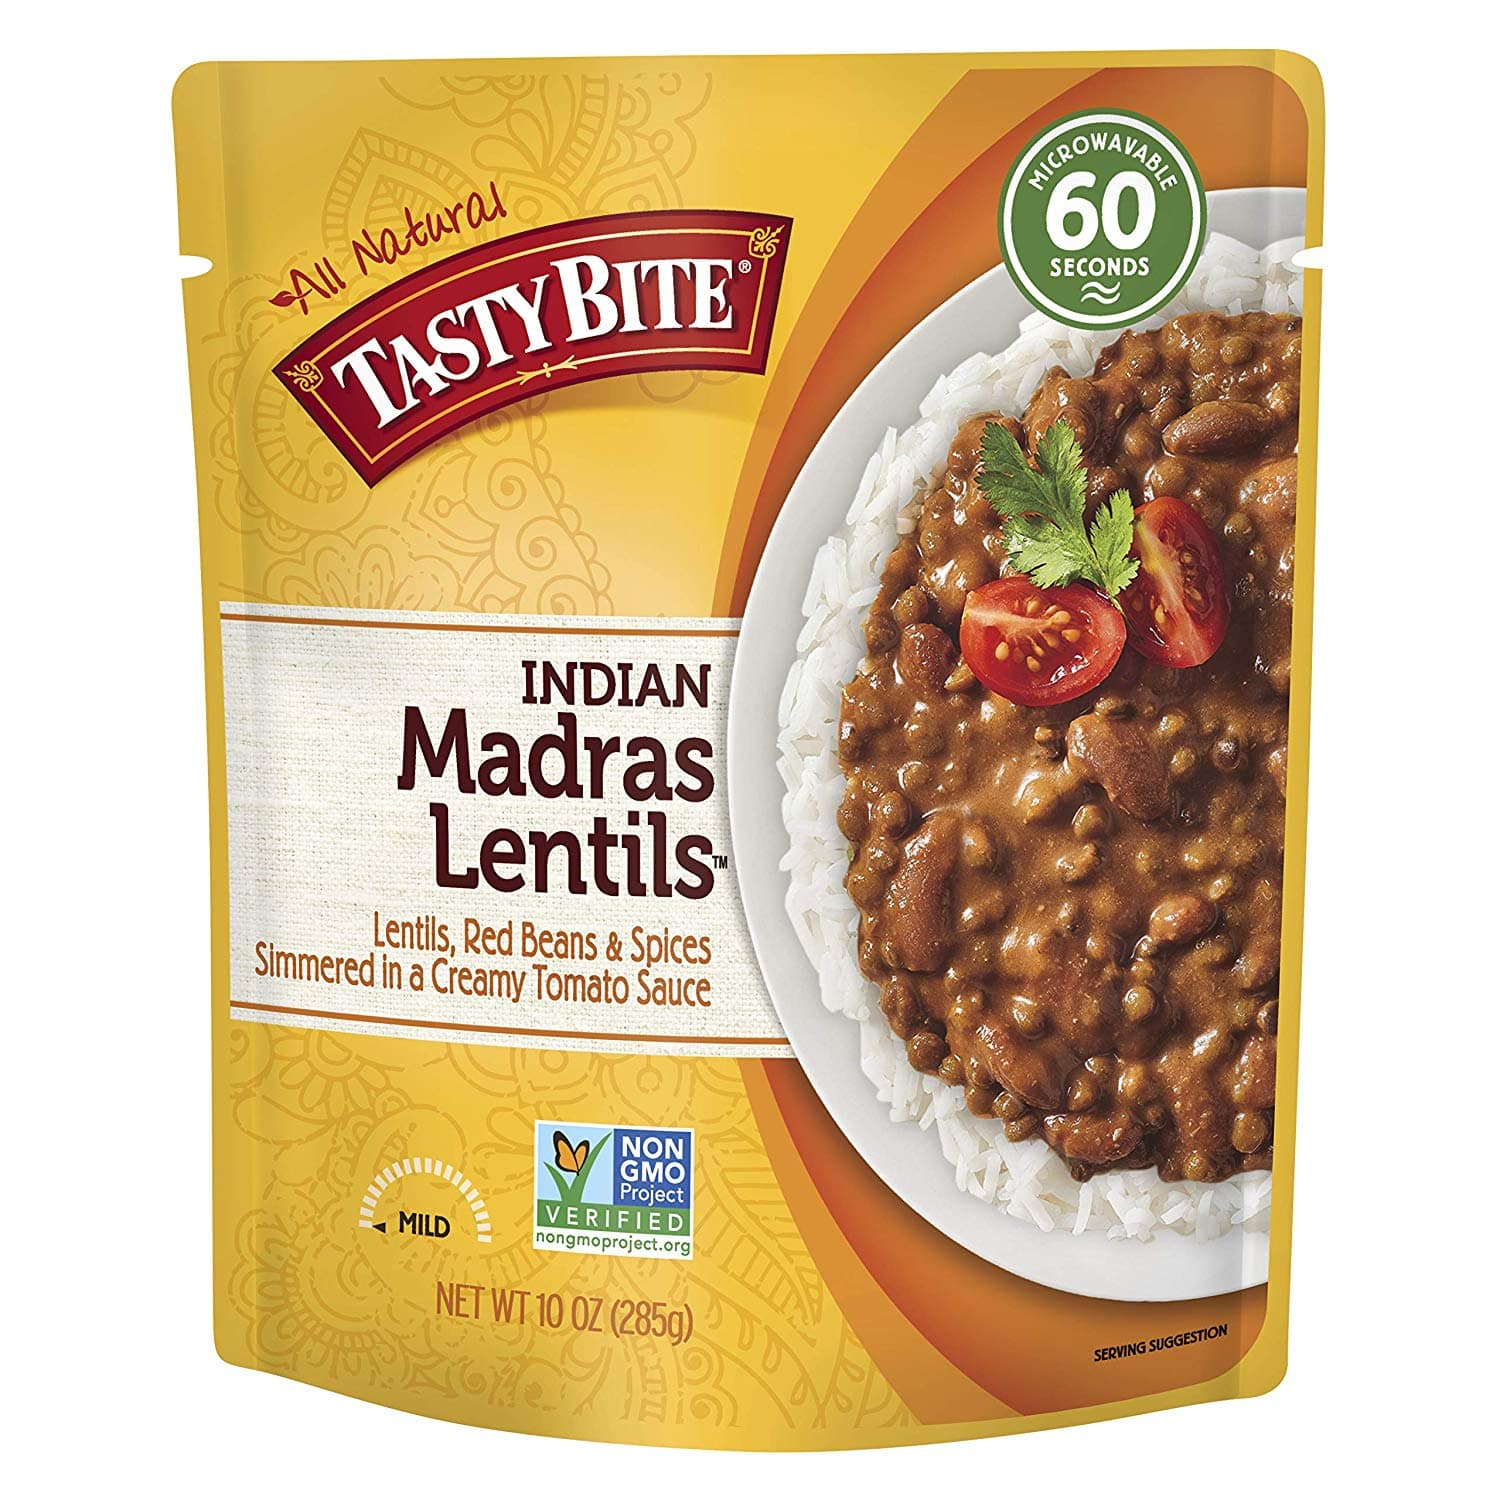 6-Pack of 10-Oz Tasty Bite Indian Entree Madras Lentils $6.75 w/ S&S + Free S&H